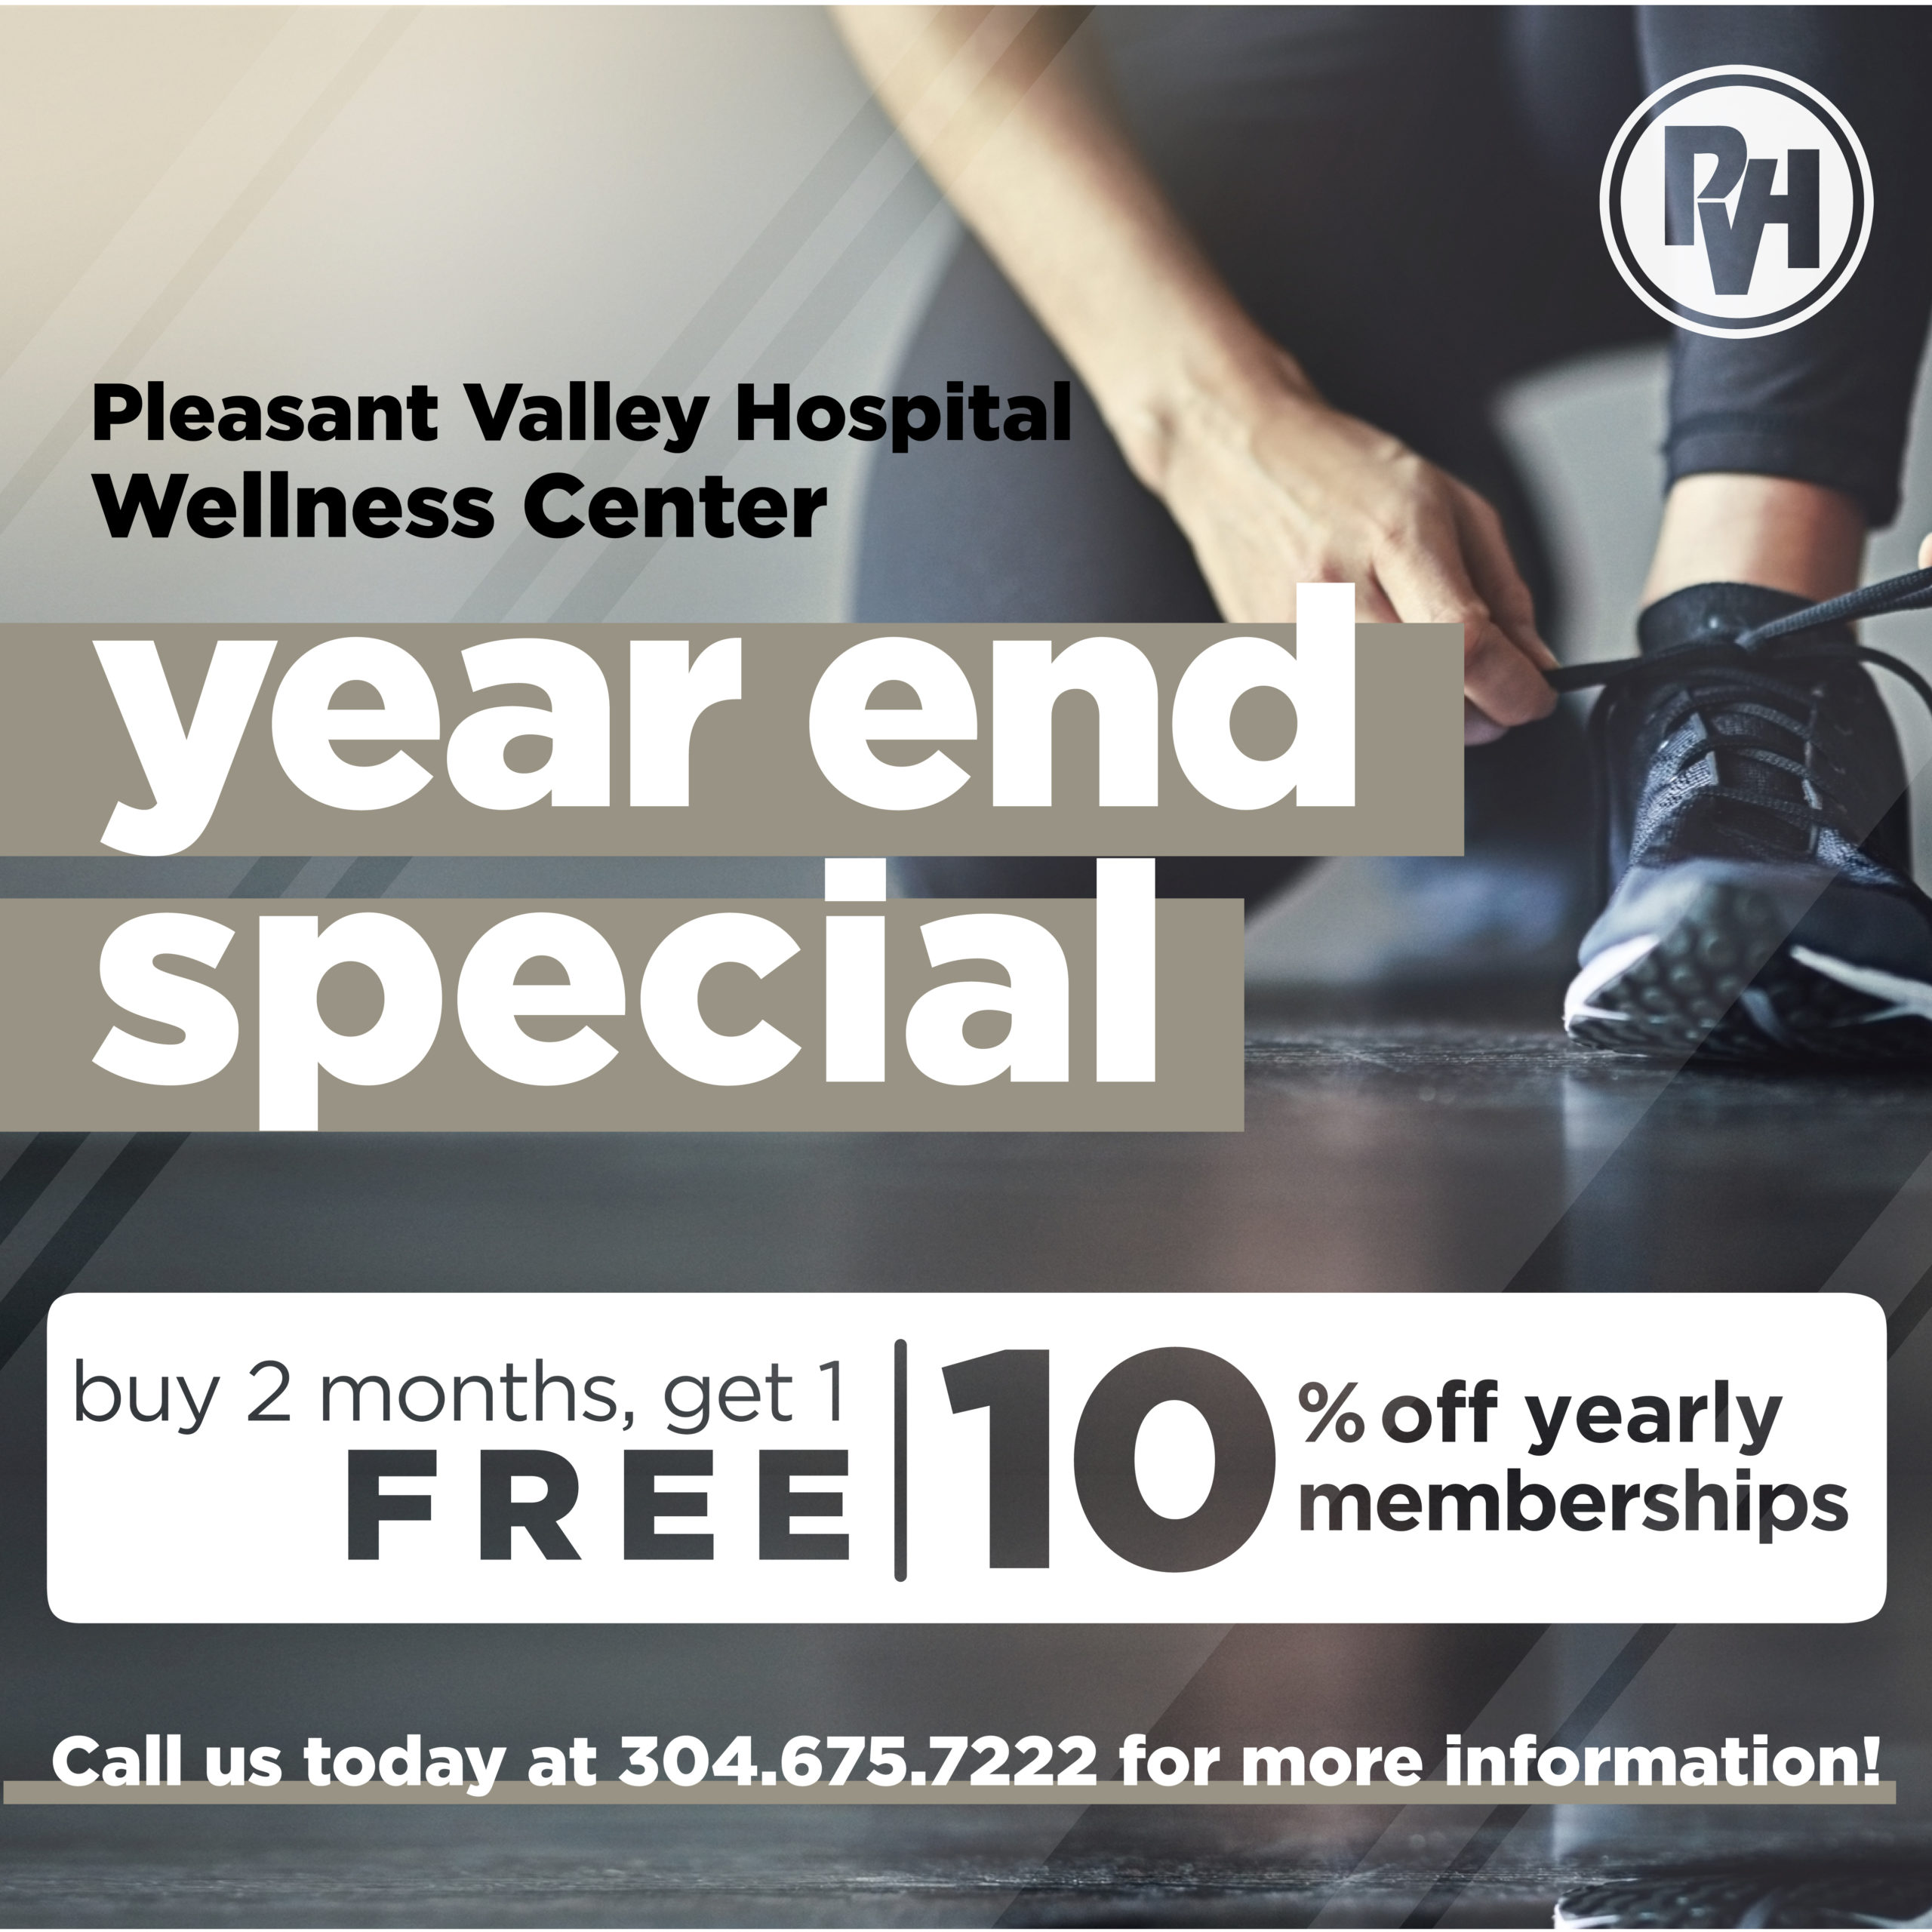 Pleasant Valley Hospital Wellness Center year end special buy 2 months, get 1 free | 10% off yearly memberships | call us today at 304.675.7222 for more information